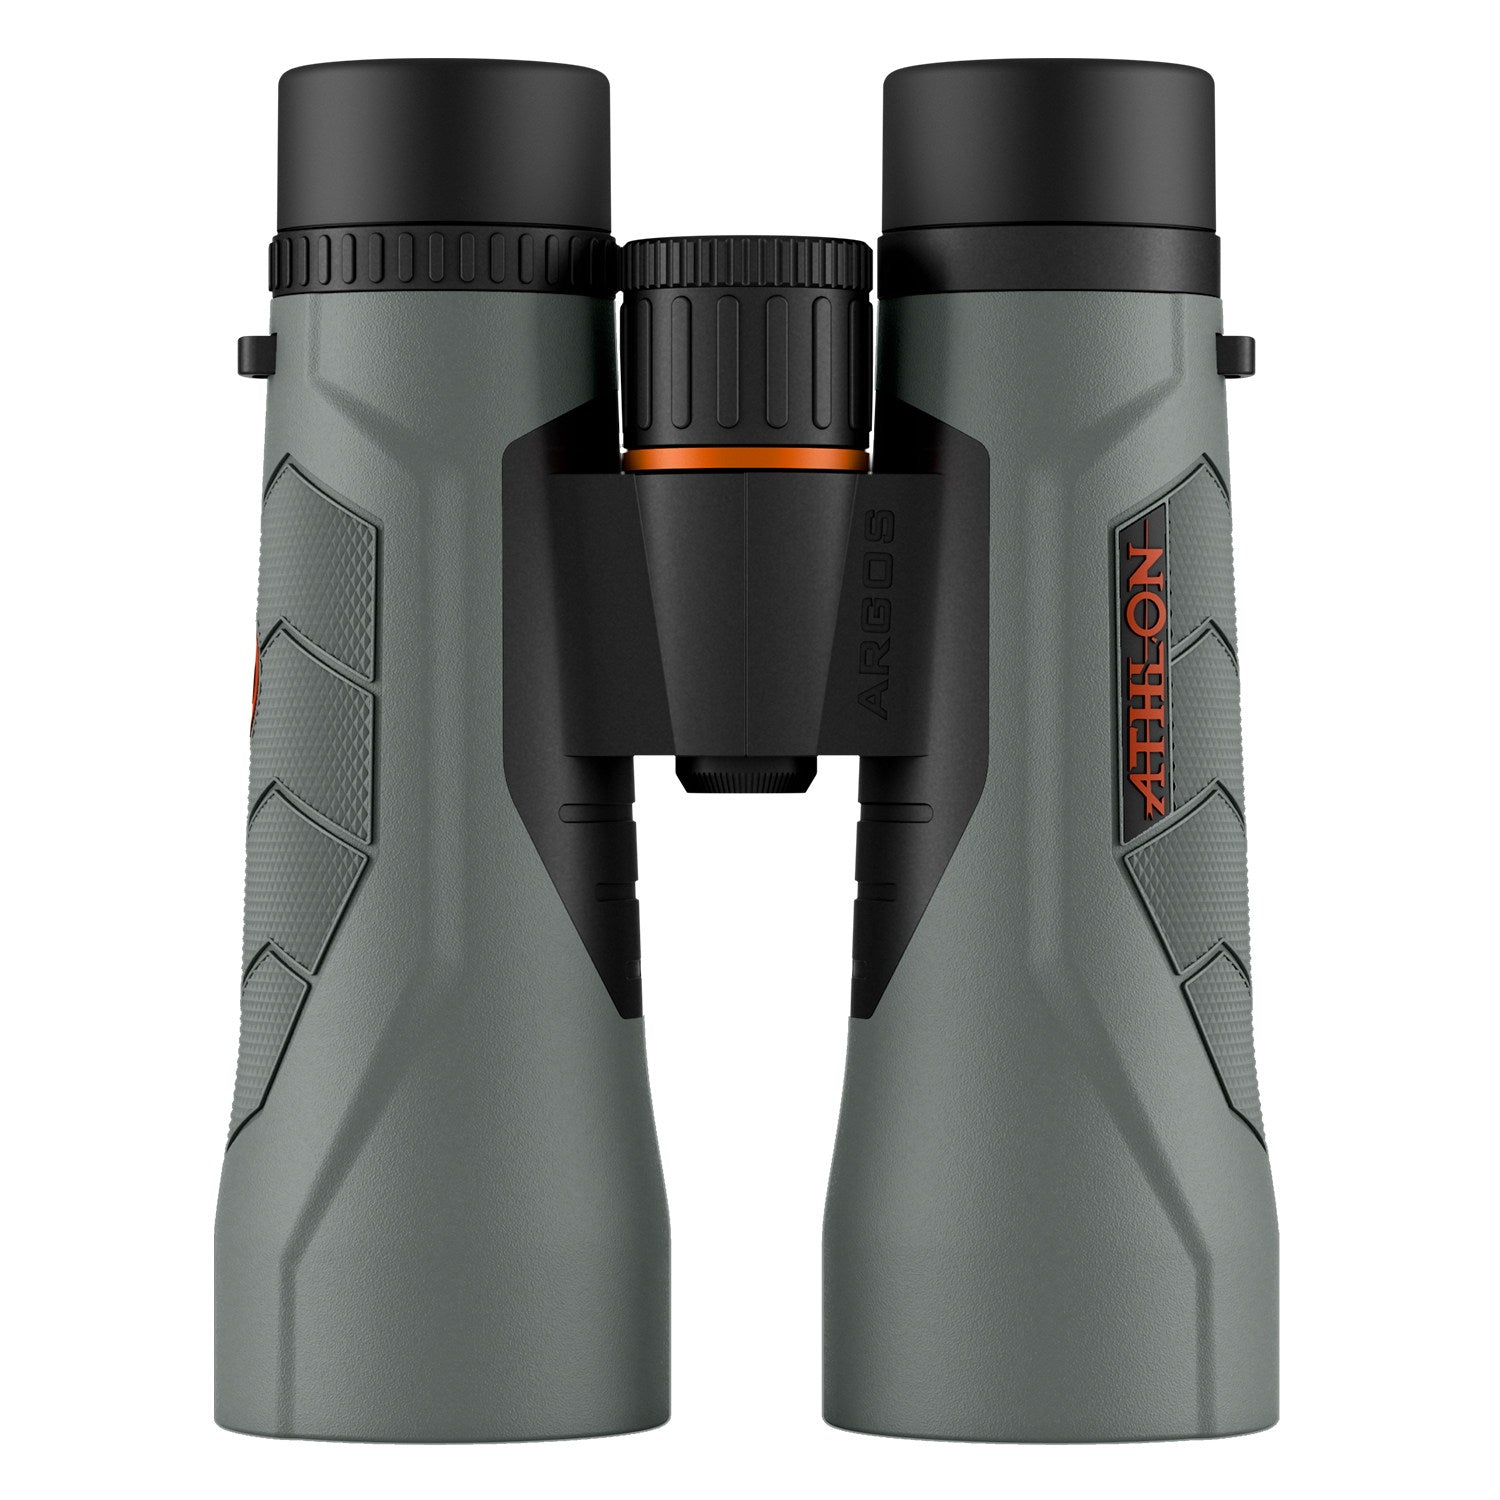 Athlon Argos G2 12x50mm HD Binoculars